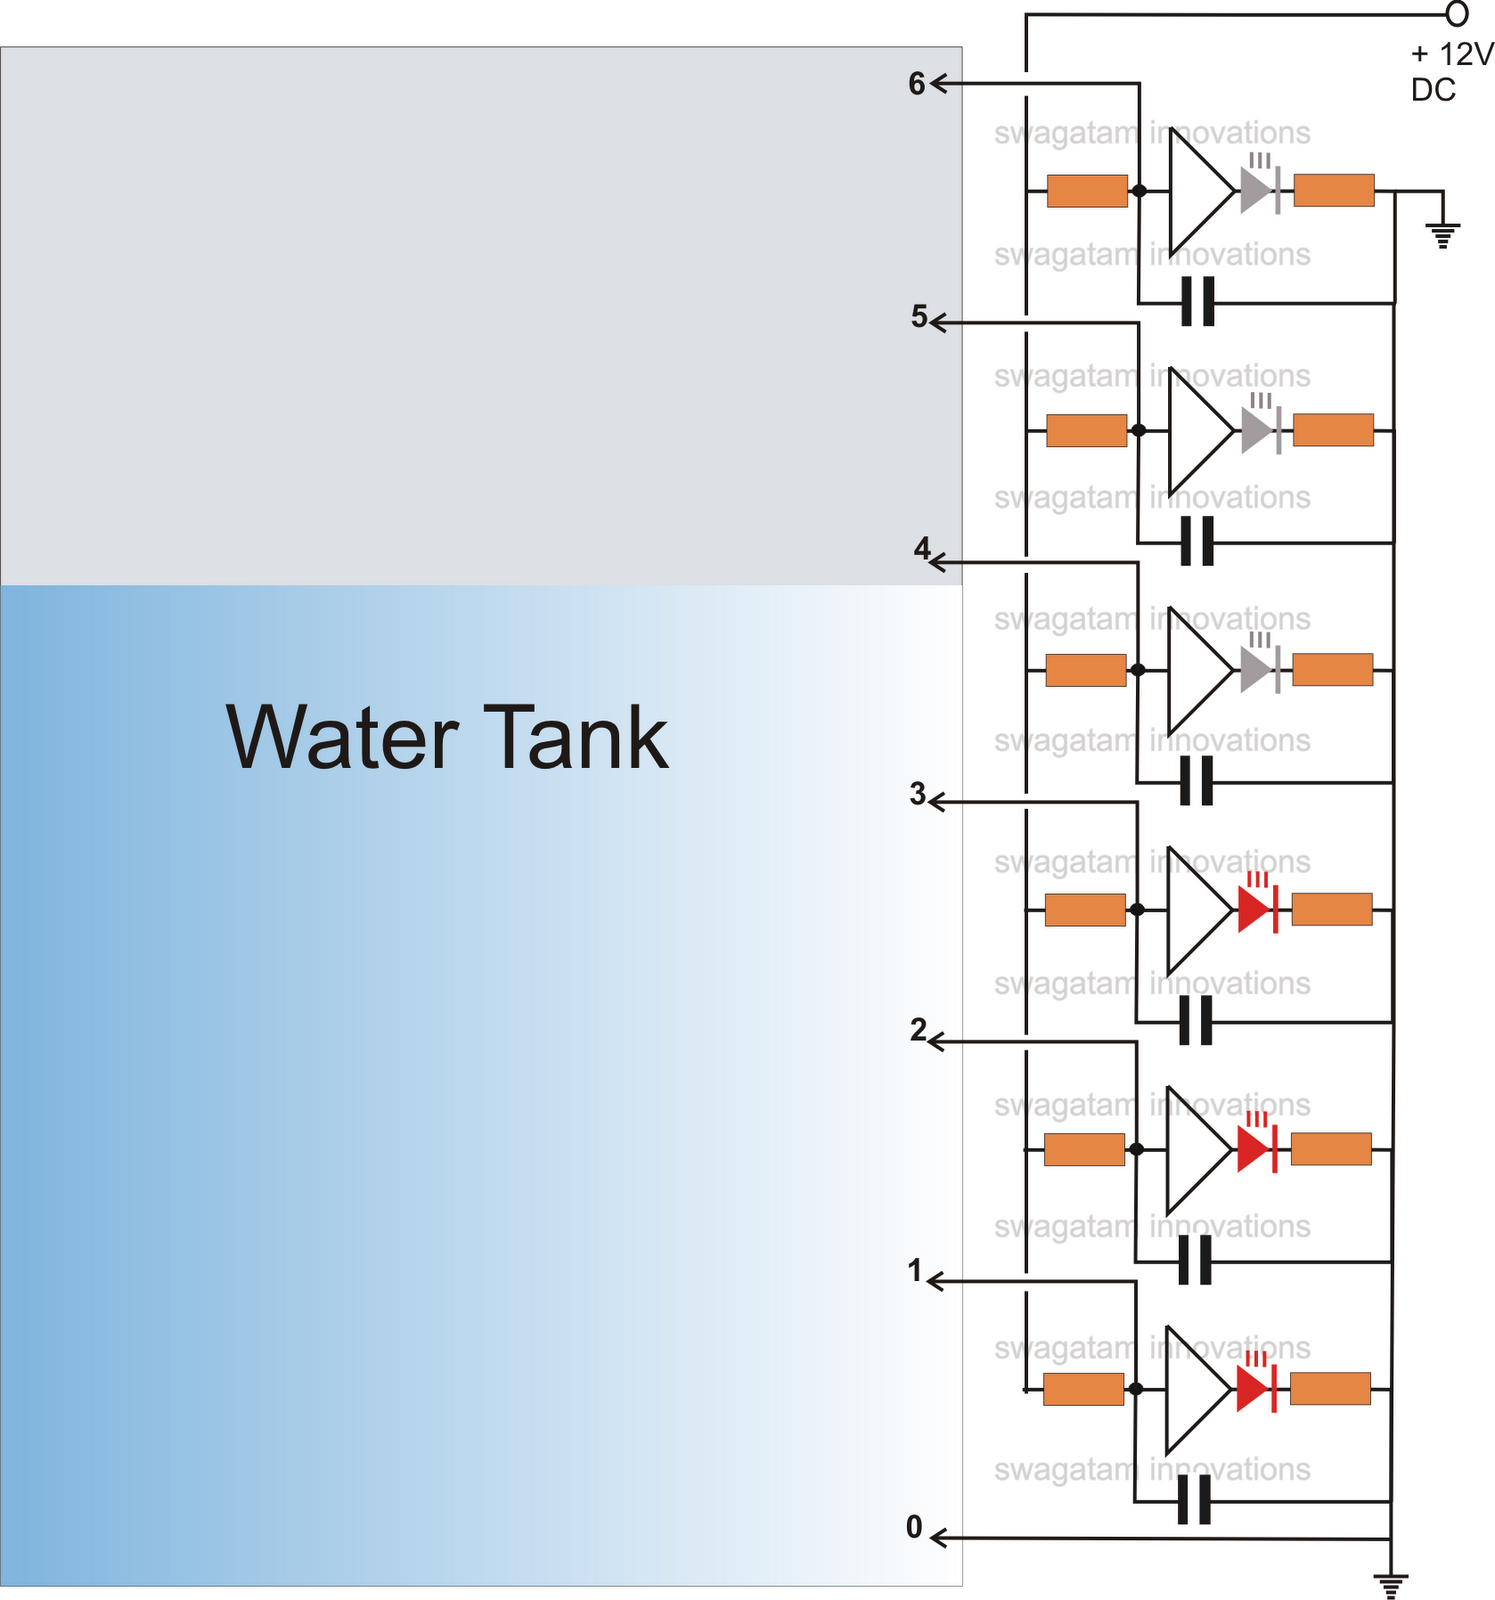 Liquid Level Controller Circuit Diagram Octopus Water Vascular System Tank Gauge Schematic Get Free Image About